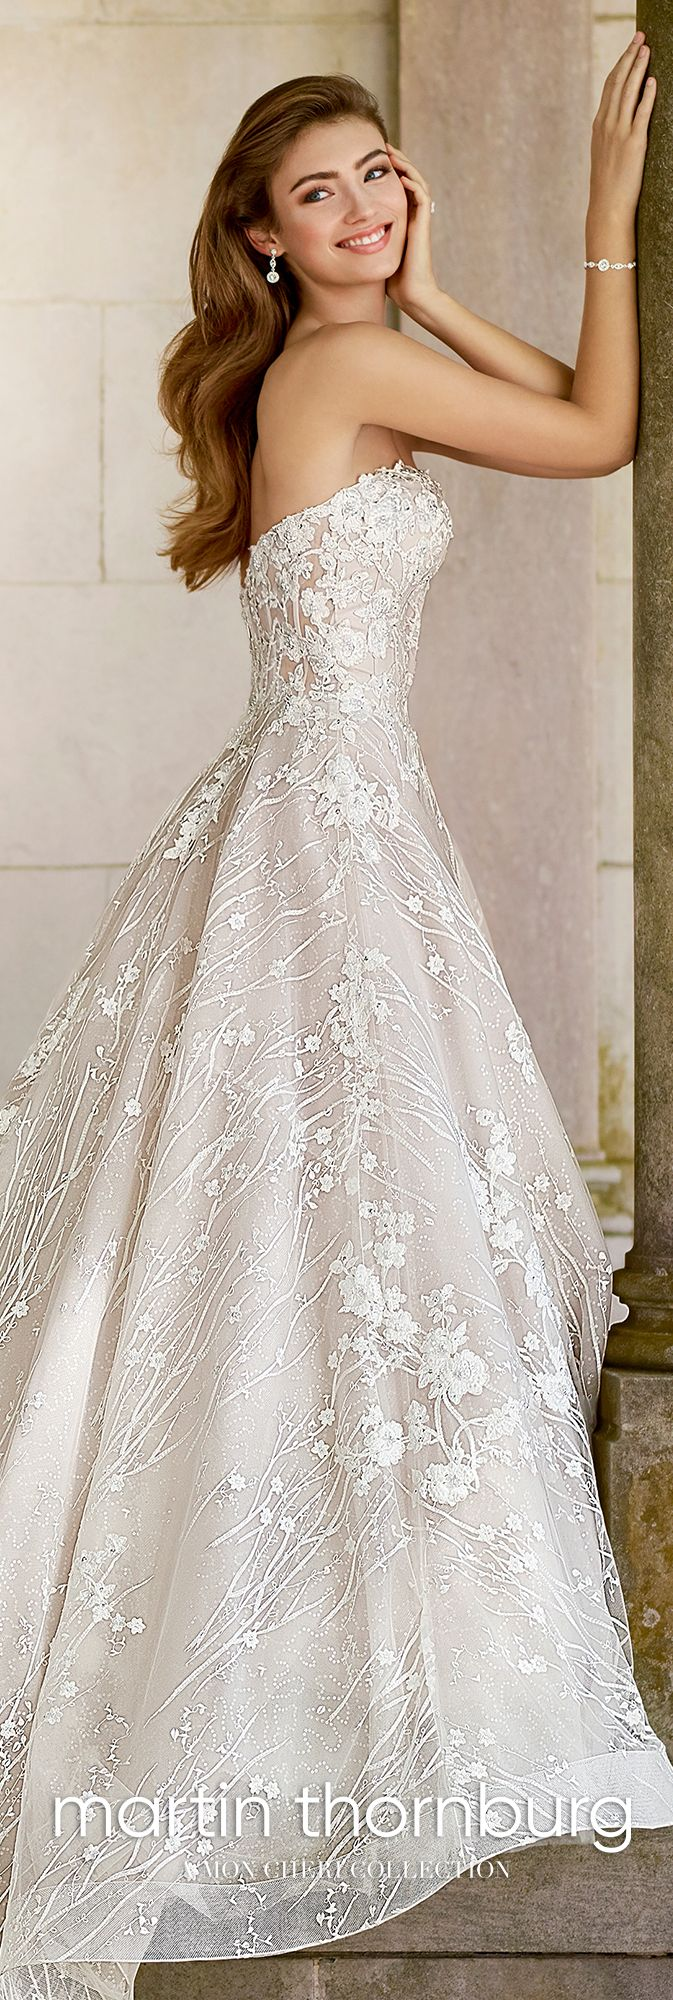 Whimsical Strapless Sweetheart Lace Wedding Gown - 118281 Coda